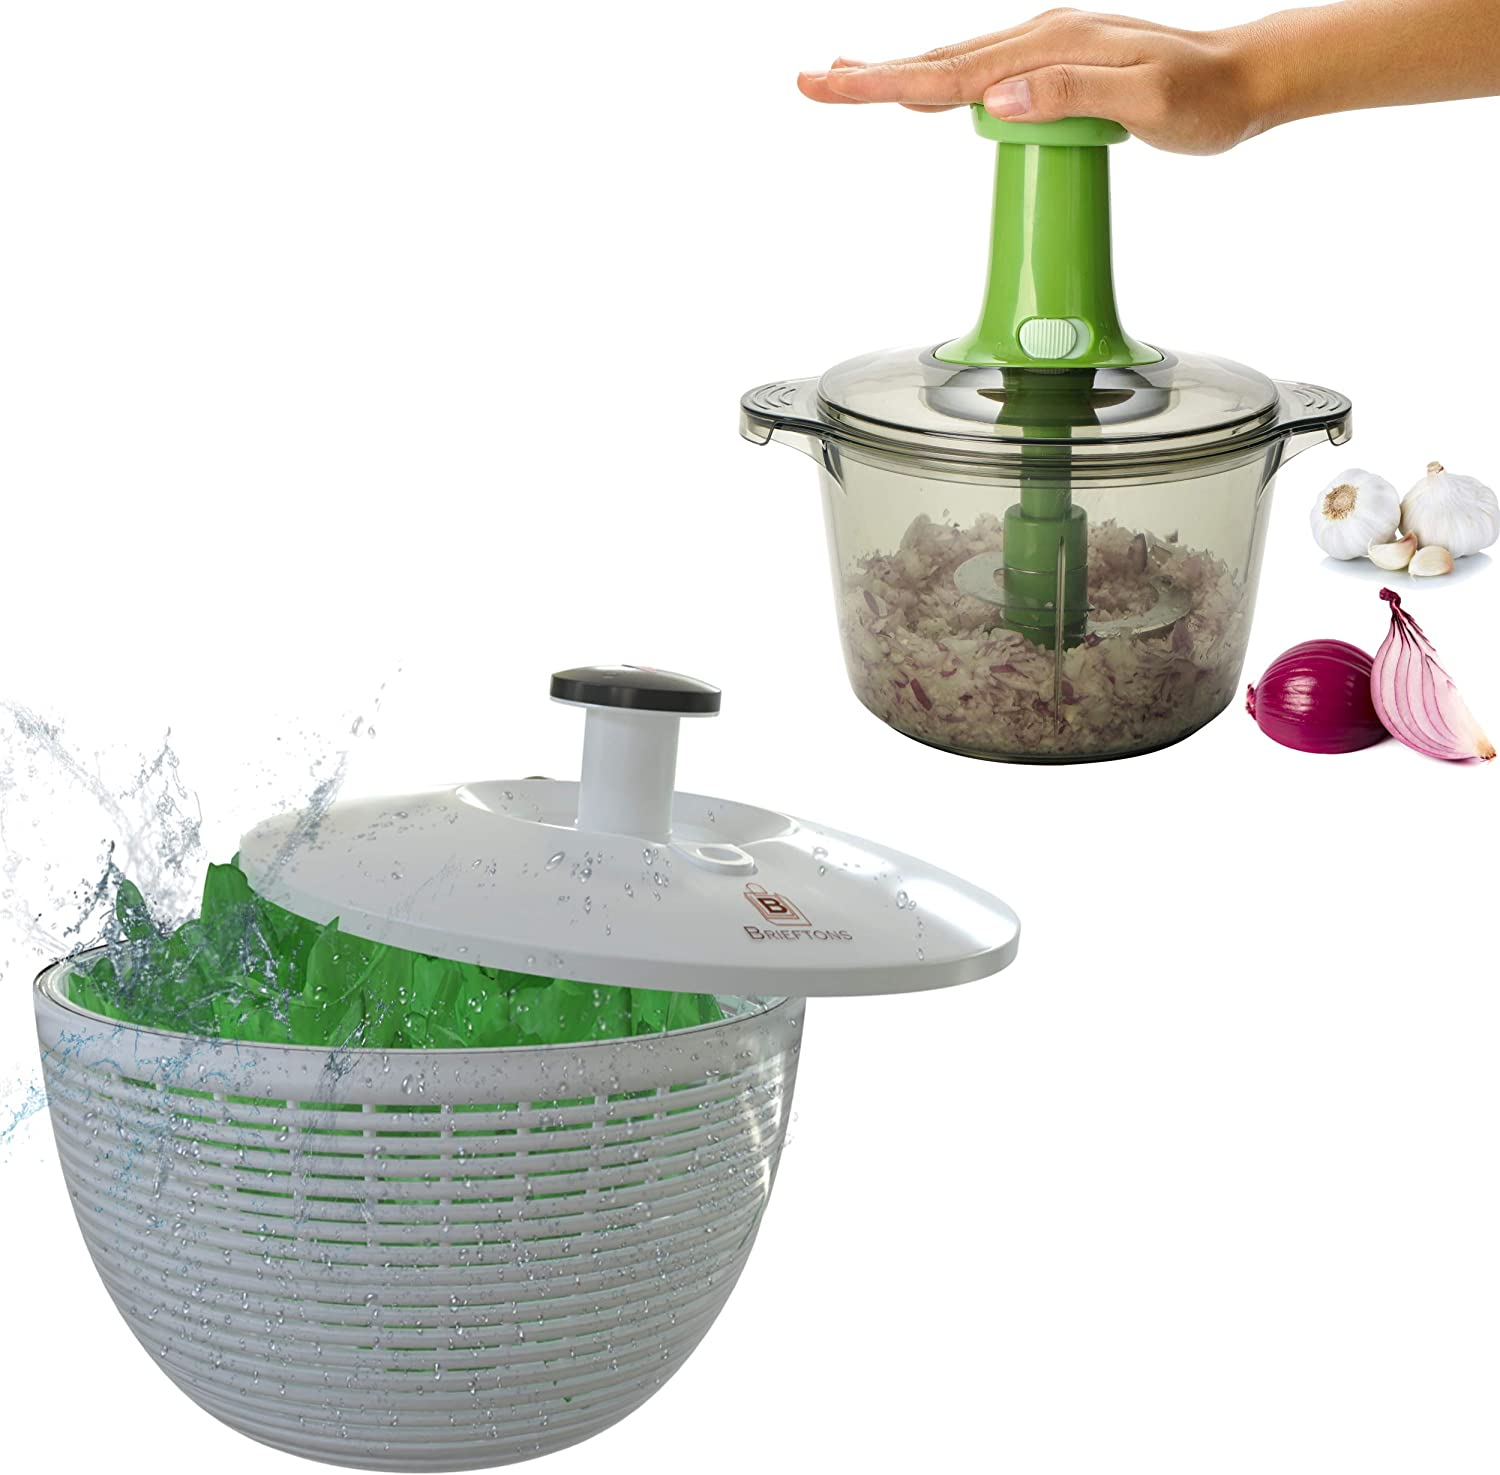 Brieftons Salad Spinner (6.2-Quart) & Brieftons Express Food Chopper (8.5-Cup)